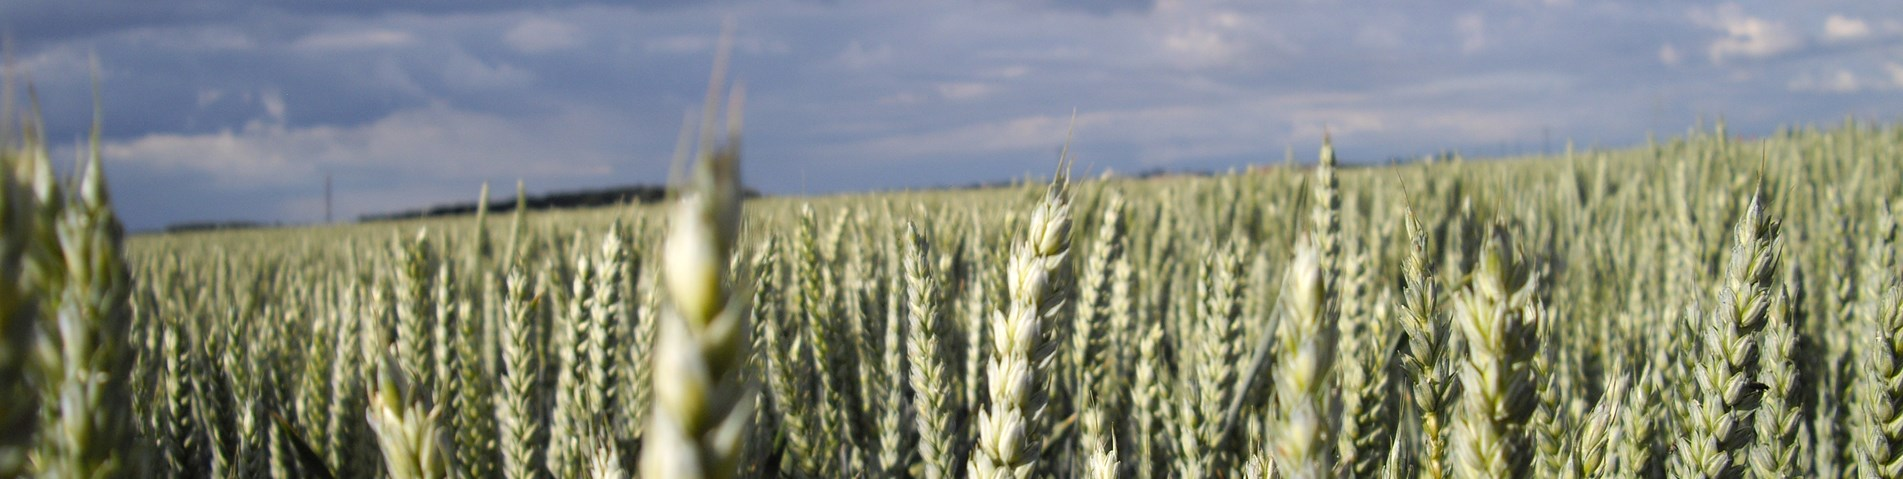 wheat-in-field.JPG